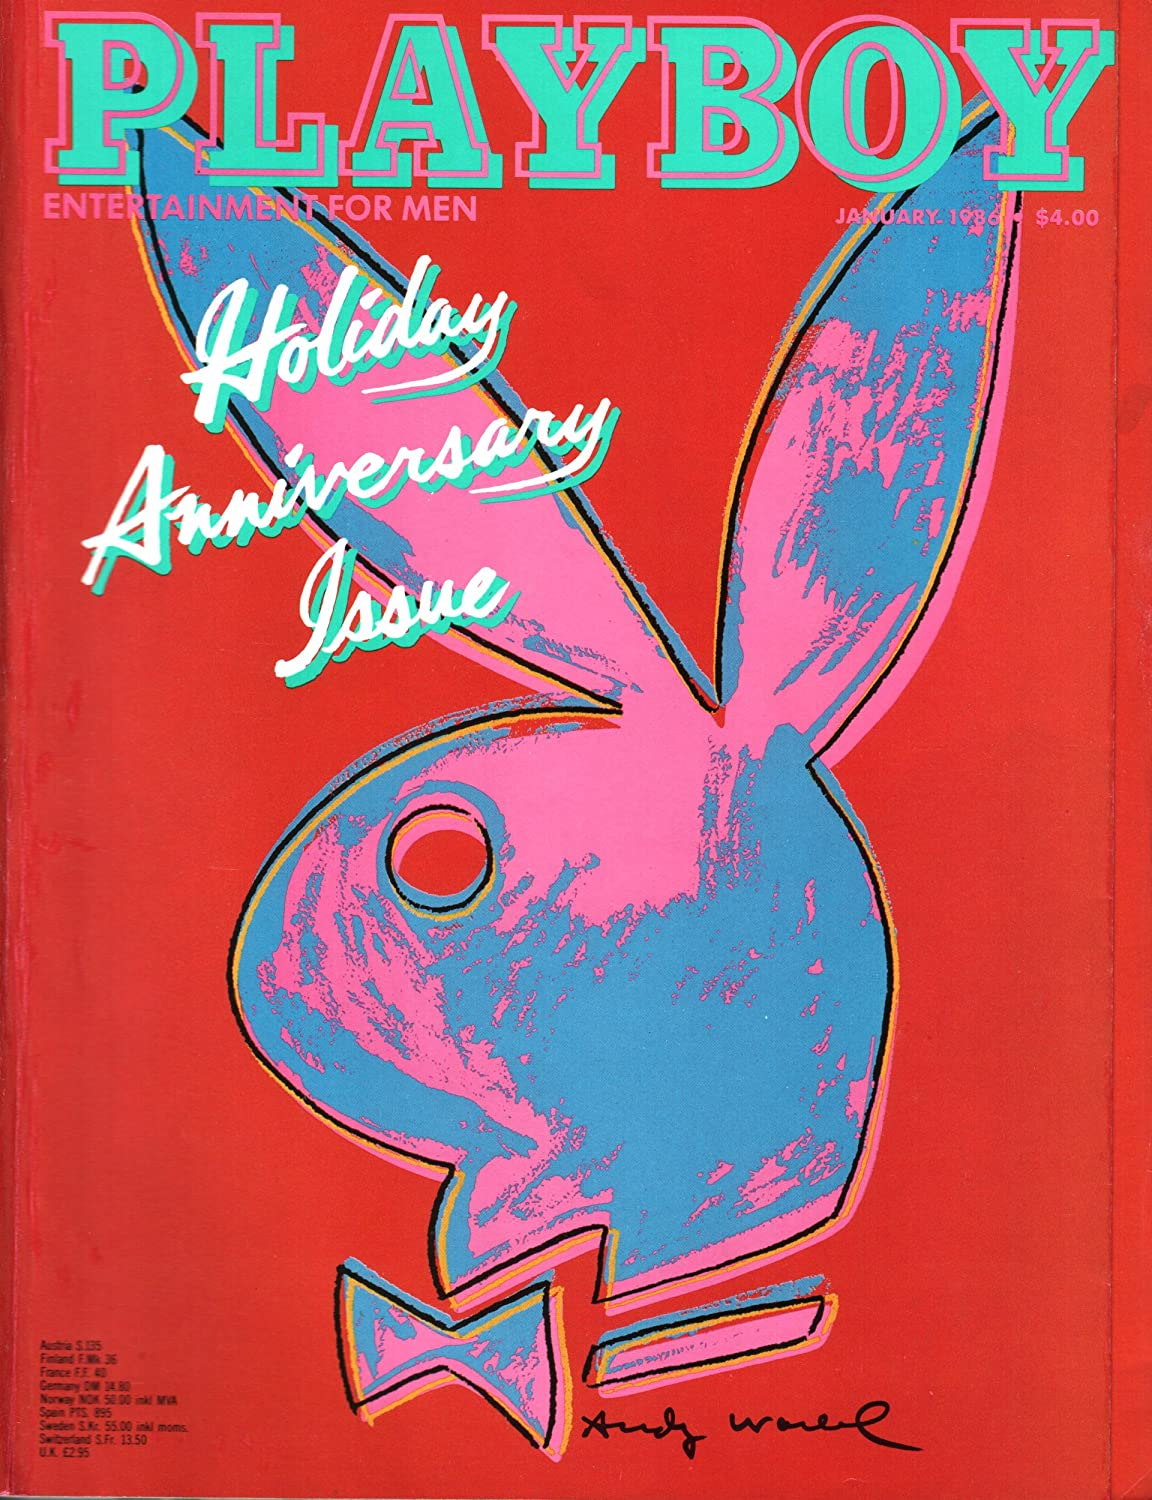 Playboy A4//A3 Poster Classic Magazine Cover Entertainment for Men